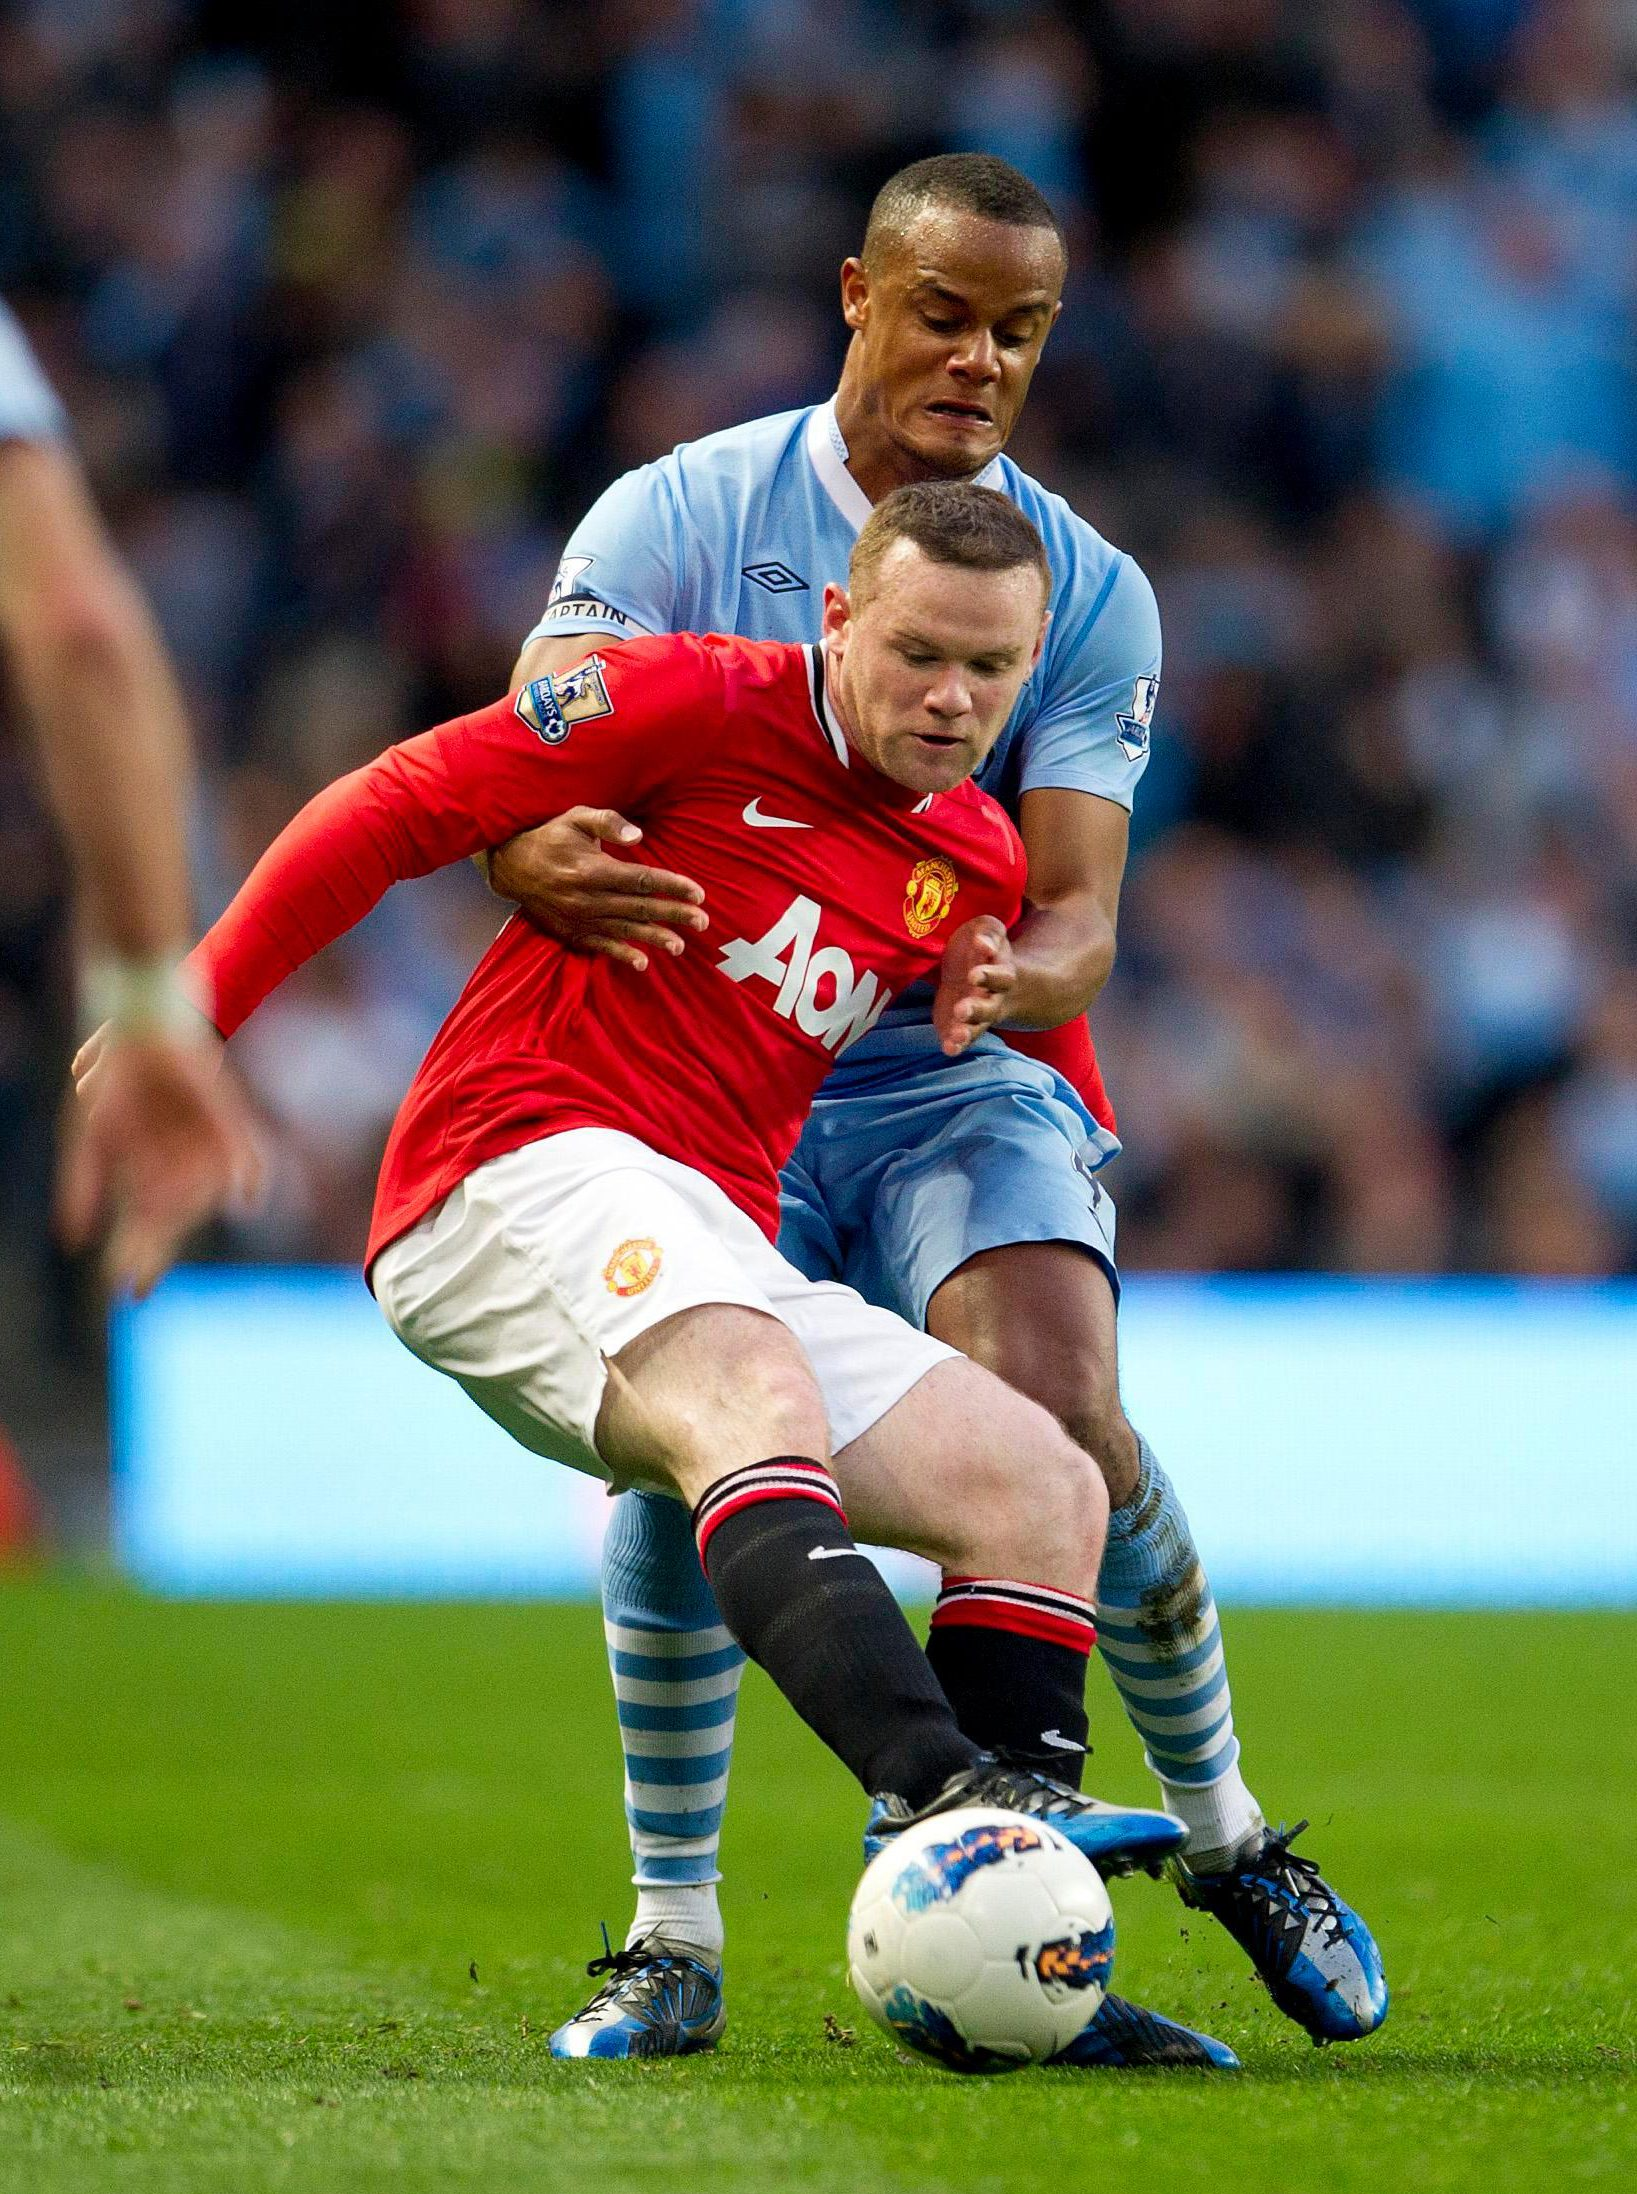 Kompany battles with Rooney for the ball